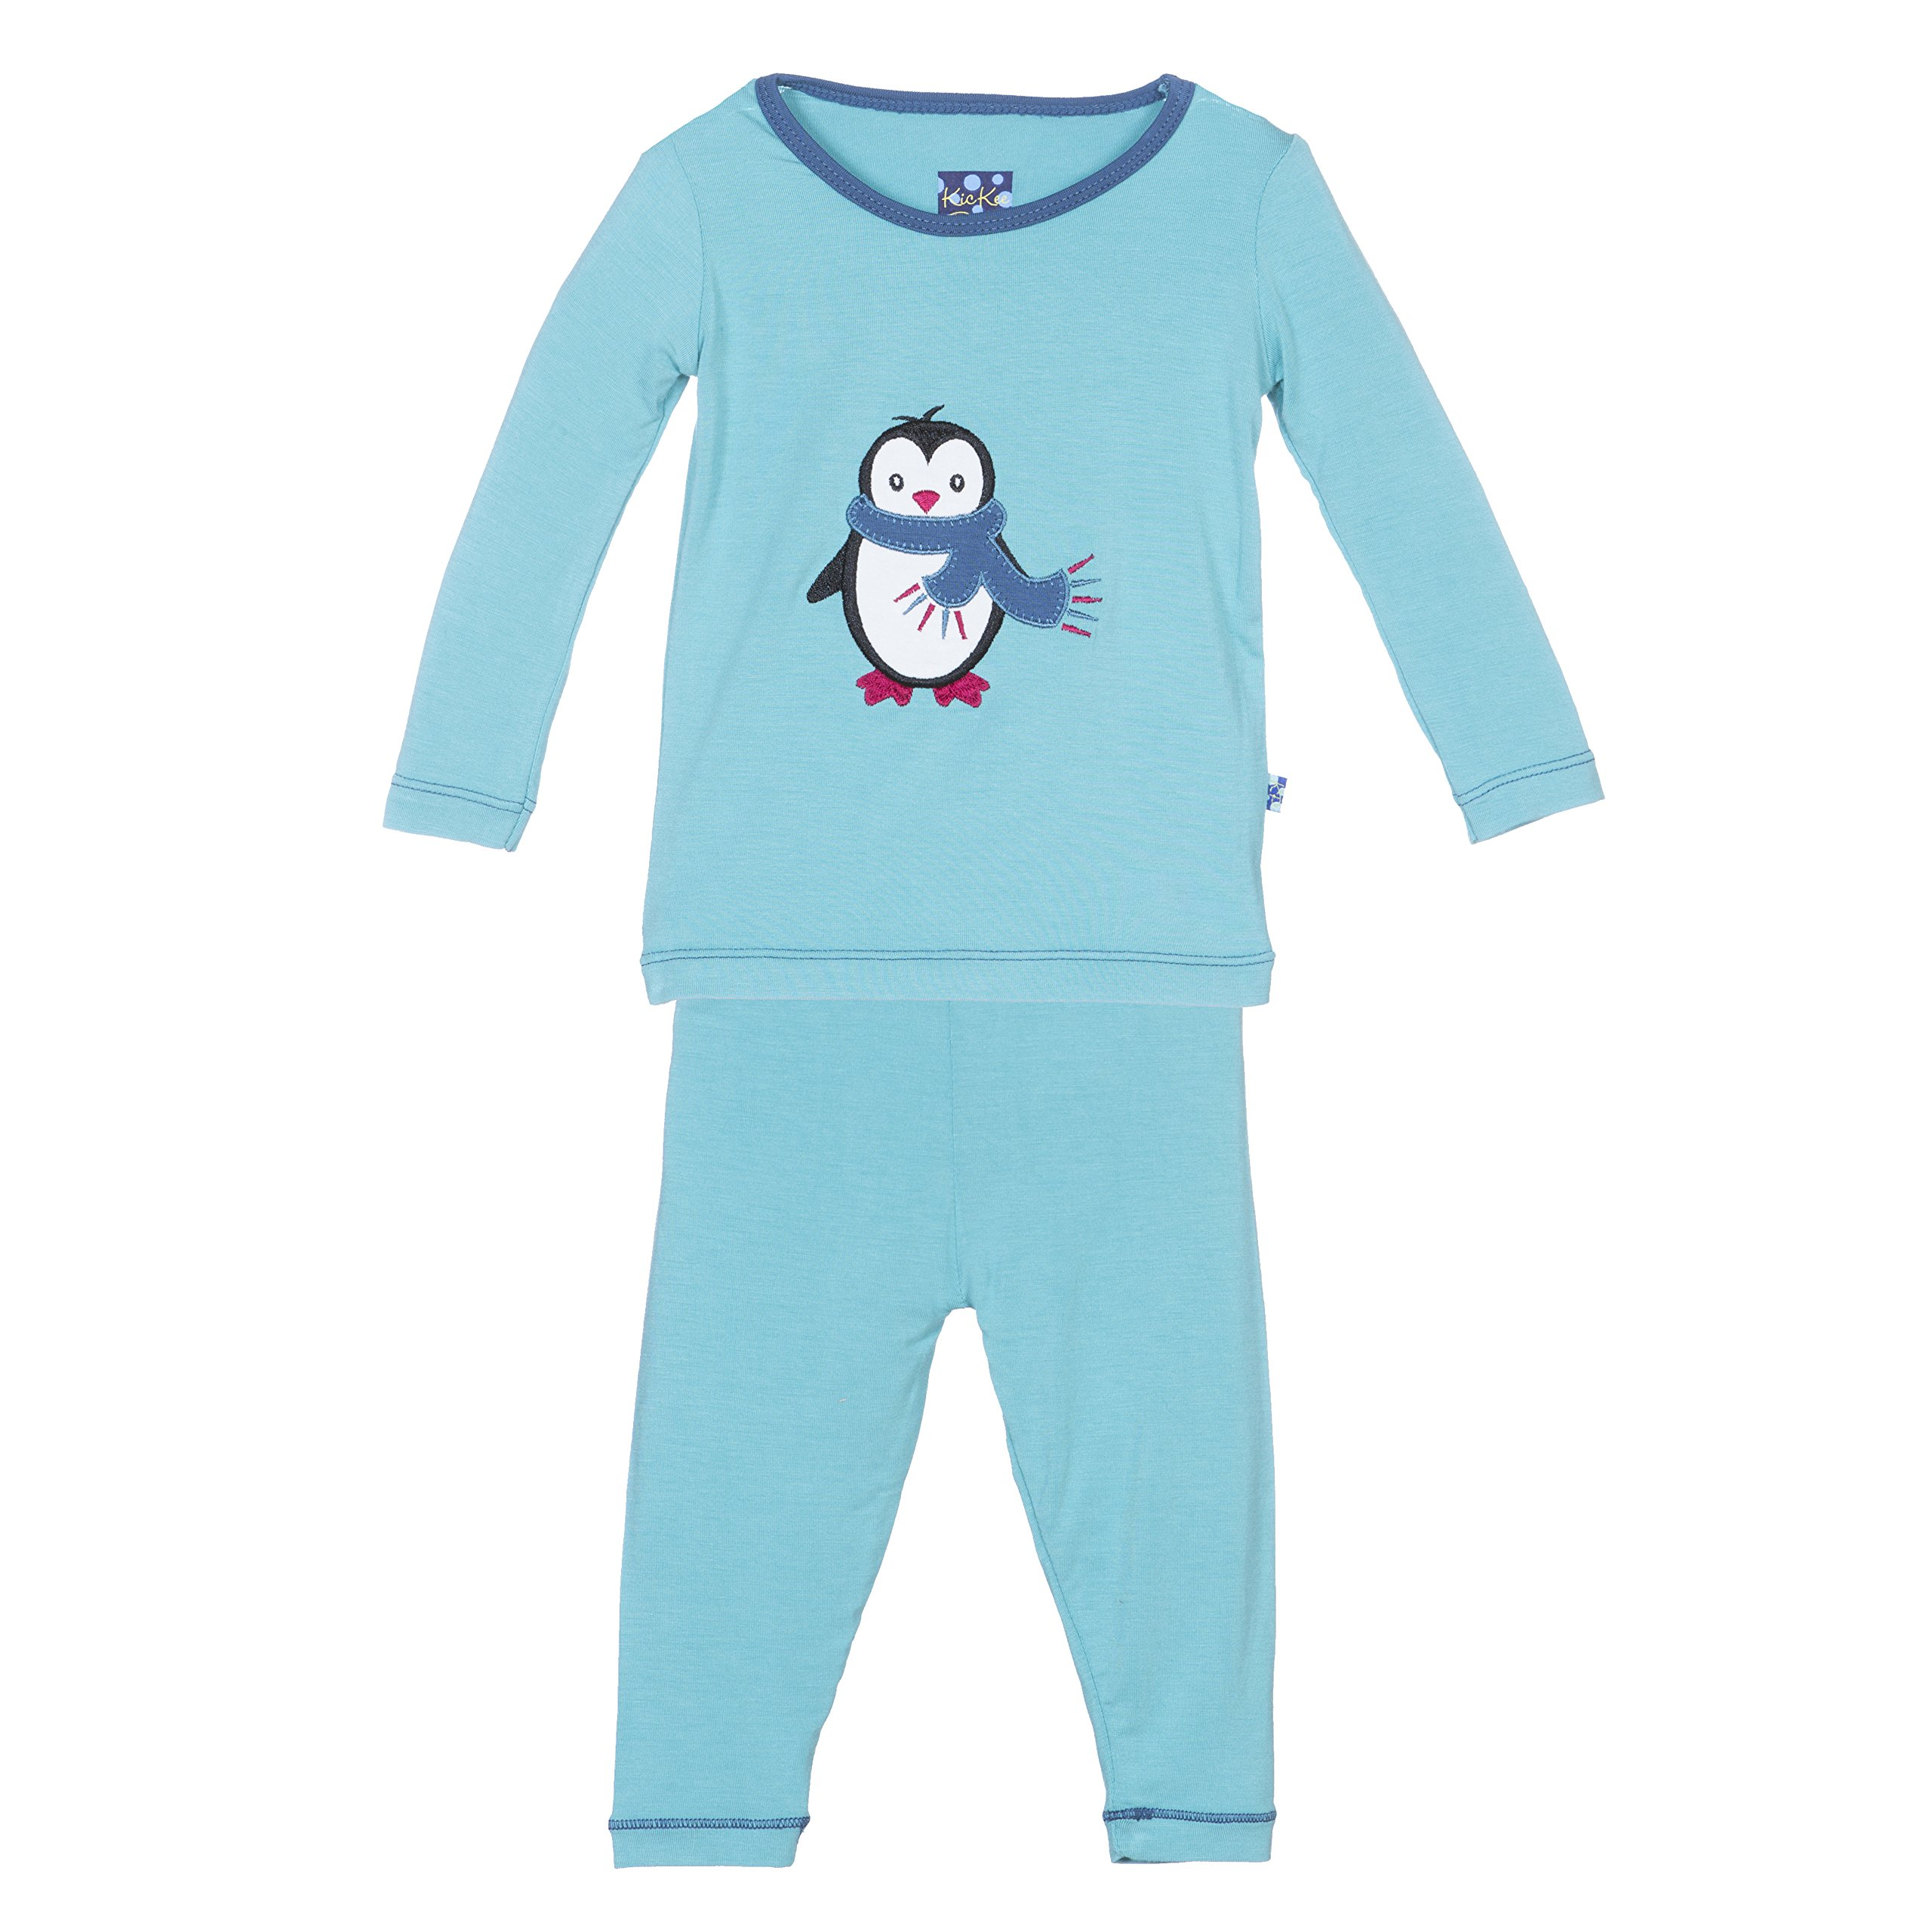 KicKee Pants Little Boys Holiday Long Sleeve Applique Pajama Set, Glacier Penguin, 18-24 Months by Kickee Pants